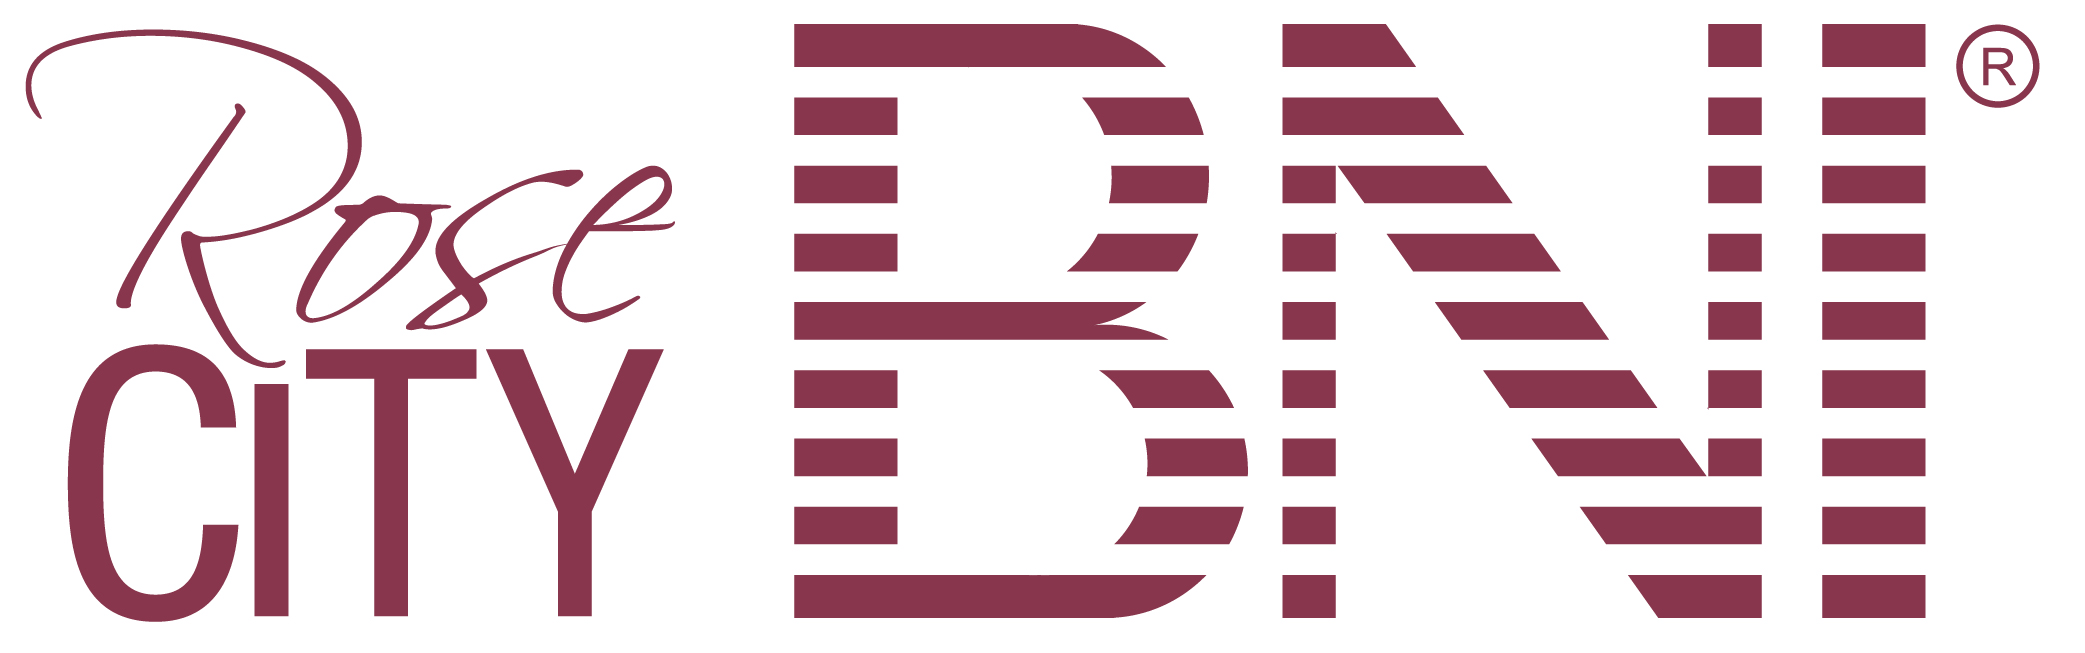 Rose City BNI Logo - Rose City BNI